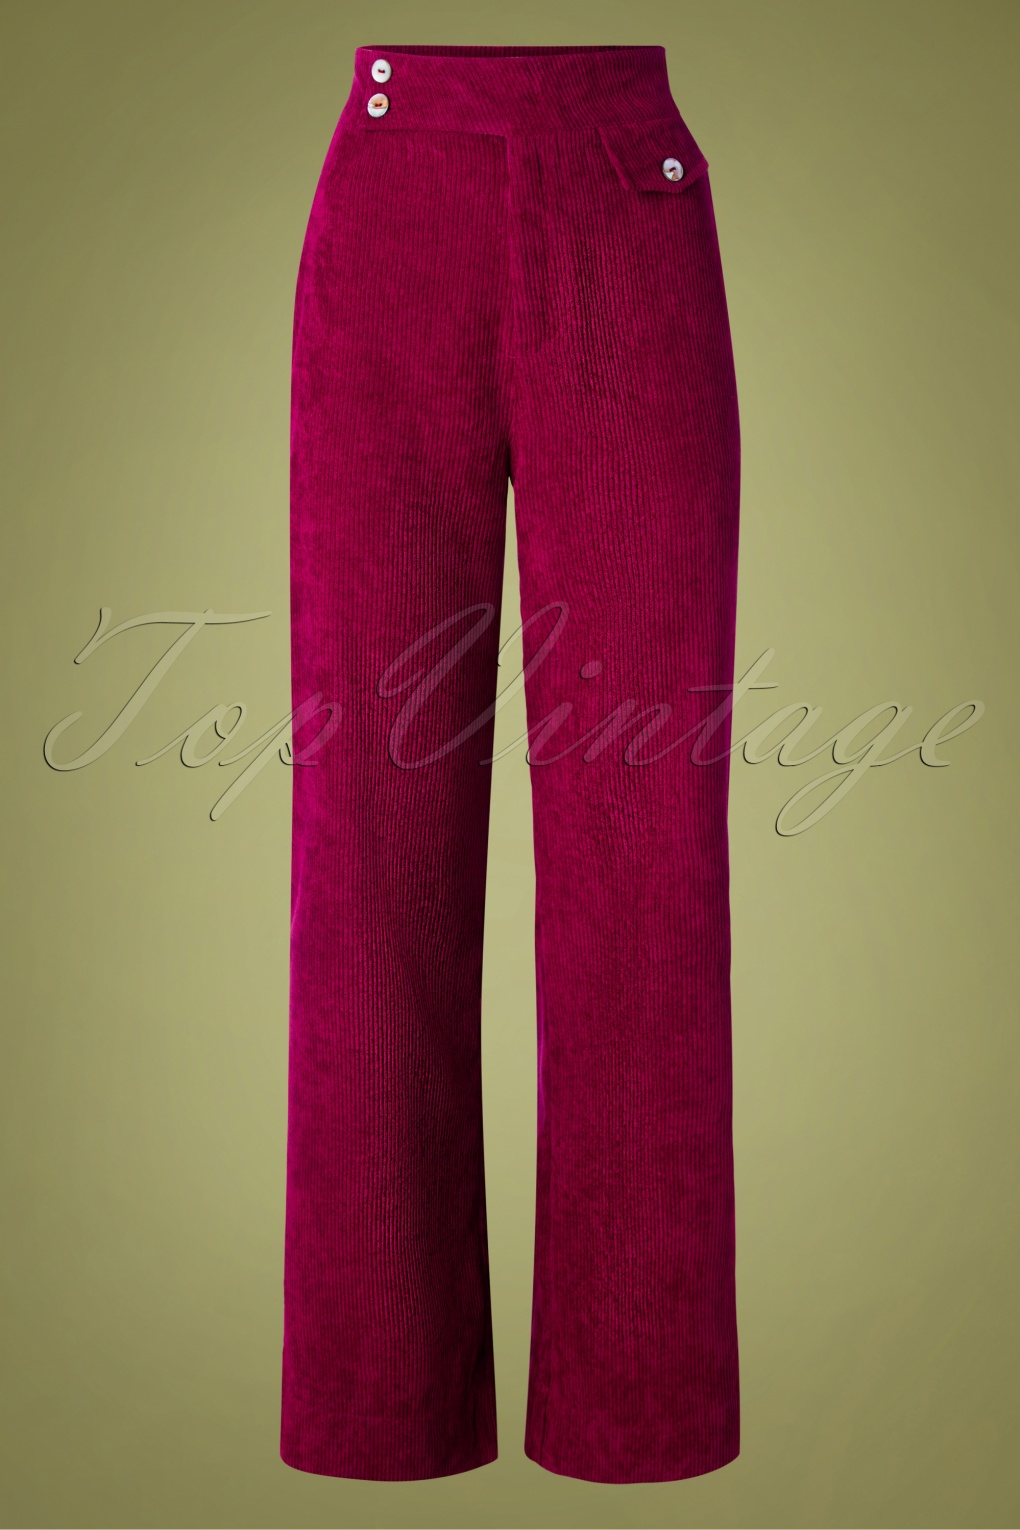 Vintage High Waisted Trousers, Sailor Pants, Jeans 70s Reese Wide Leg Corduroy Trousers in Burgundy £40.22 AT vintagedancer.com